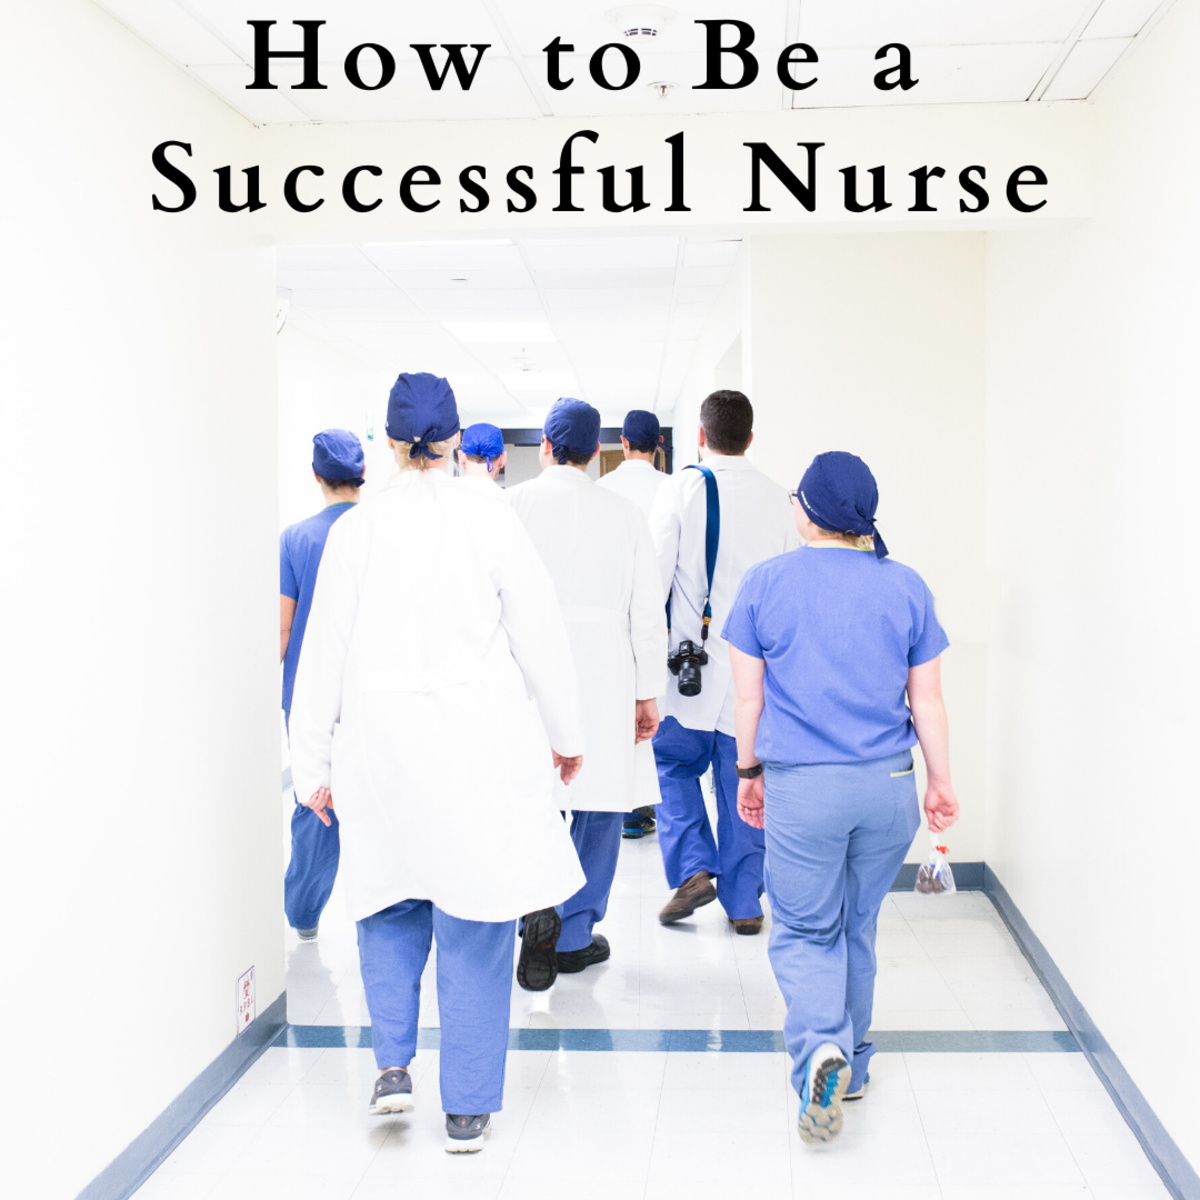 How to Be a Successful Nurse